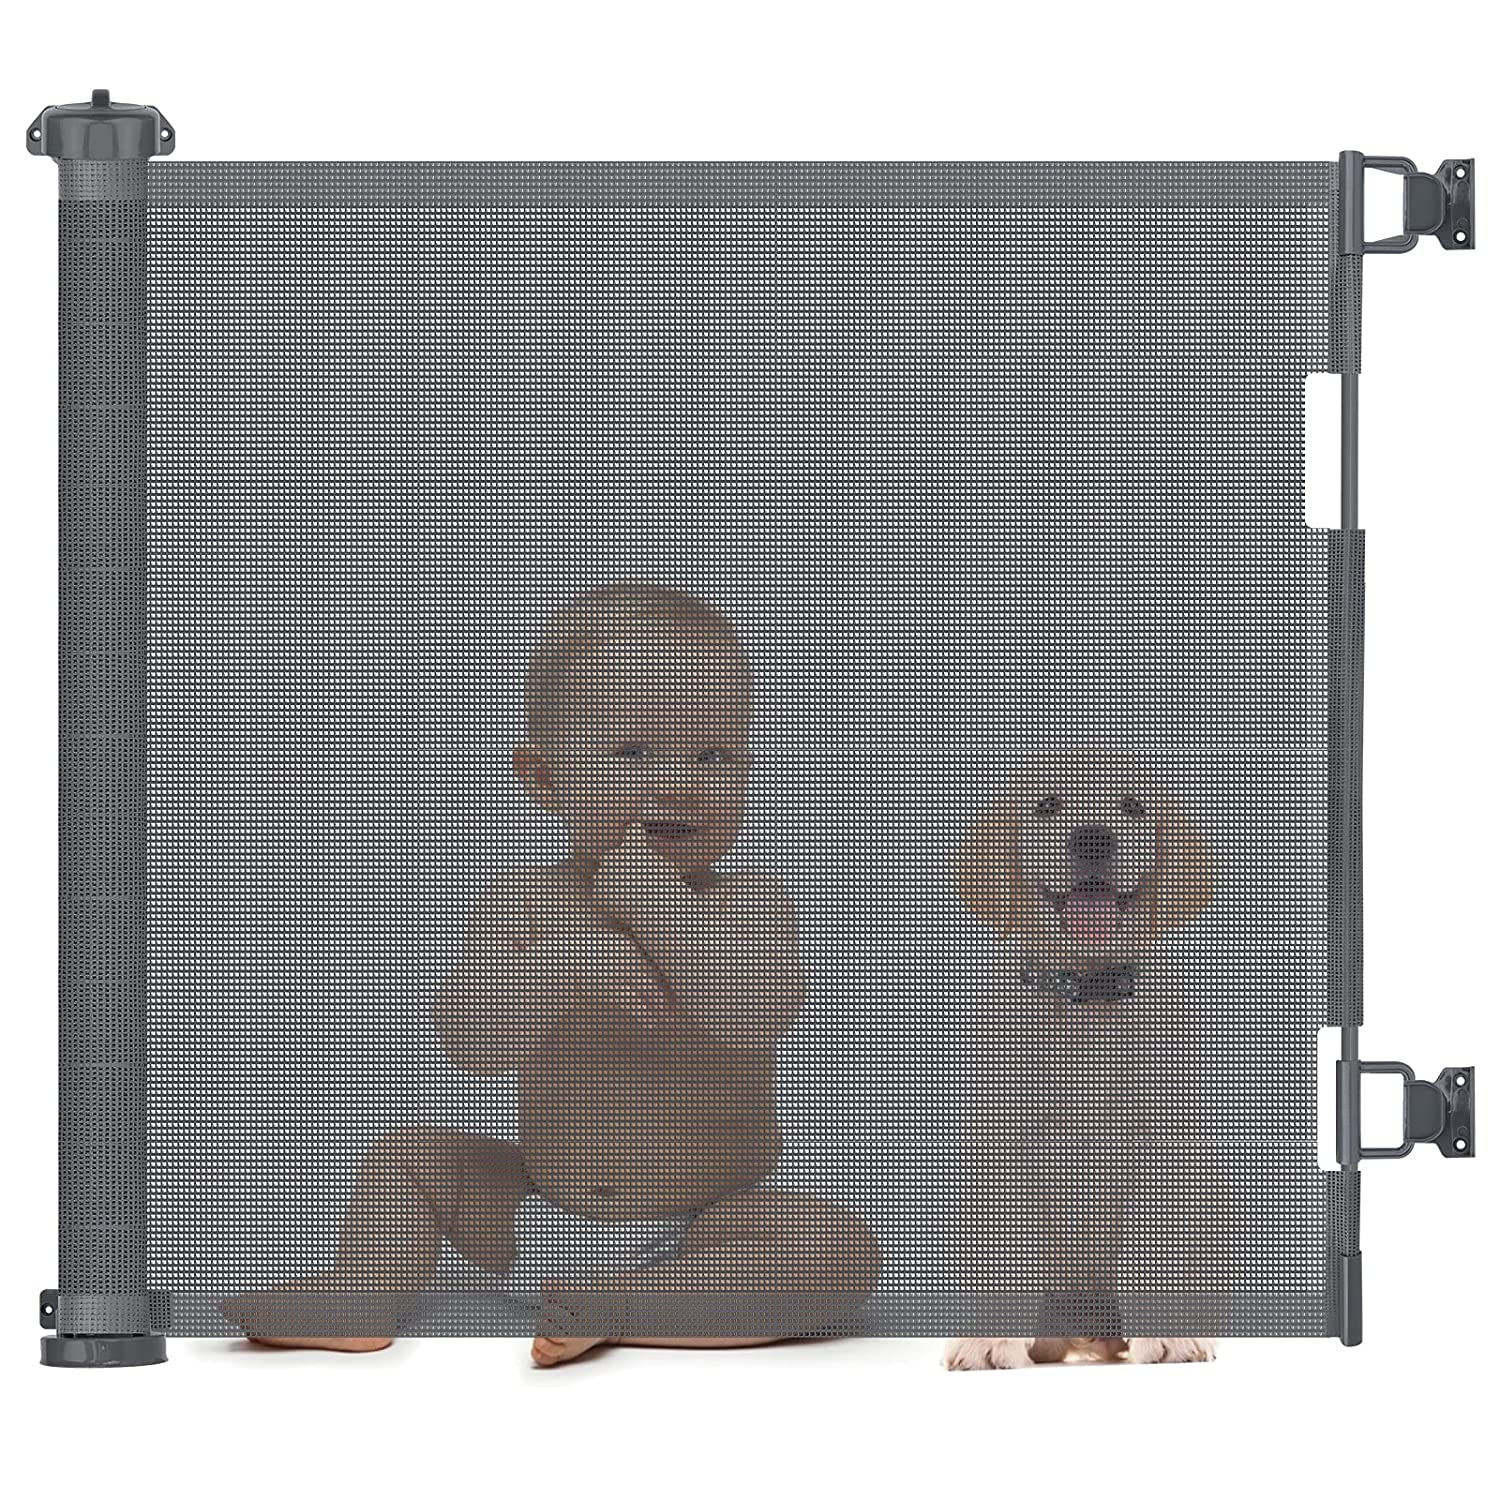 Mesh Retractable Baby Gate, Retractable Safety Gate 34 inch Tall Extends to 59 inch with 2 Sets of Mounting Hardware, Extra Wide Retractable Dog Gate for Stairs, Doorways, Hallways, Indoor, Outdoor